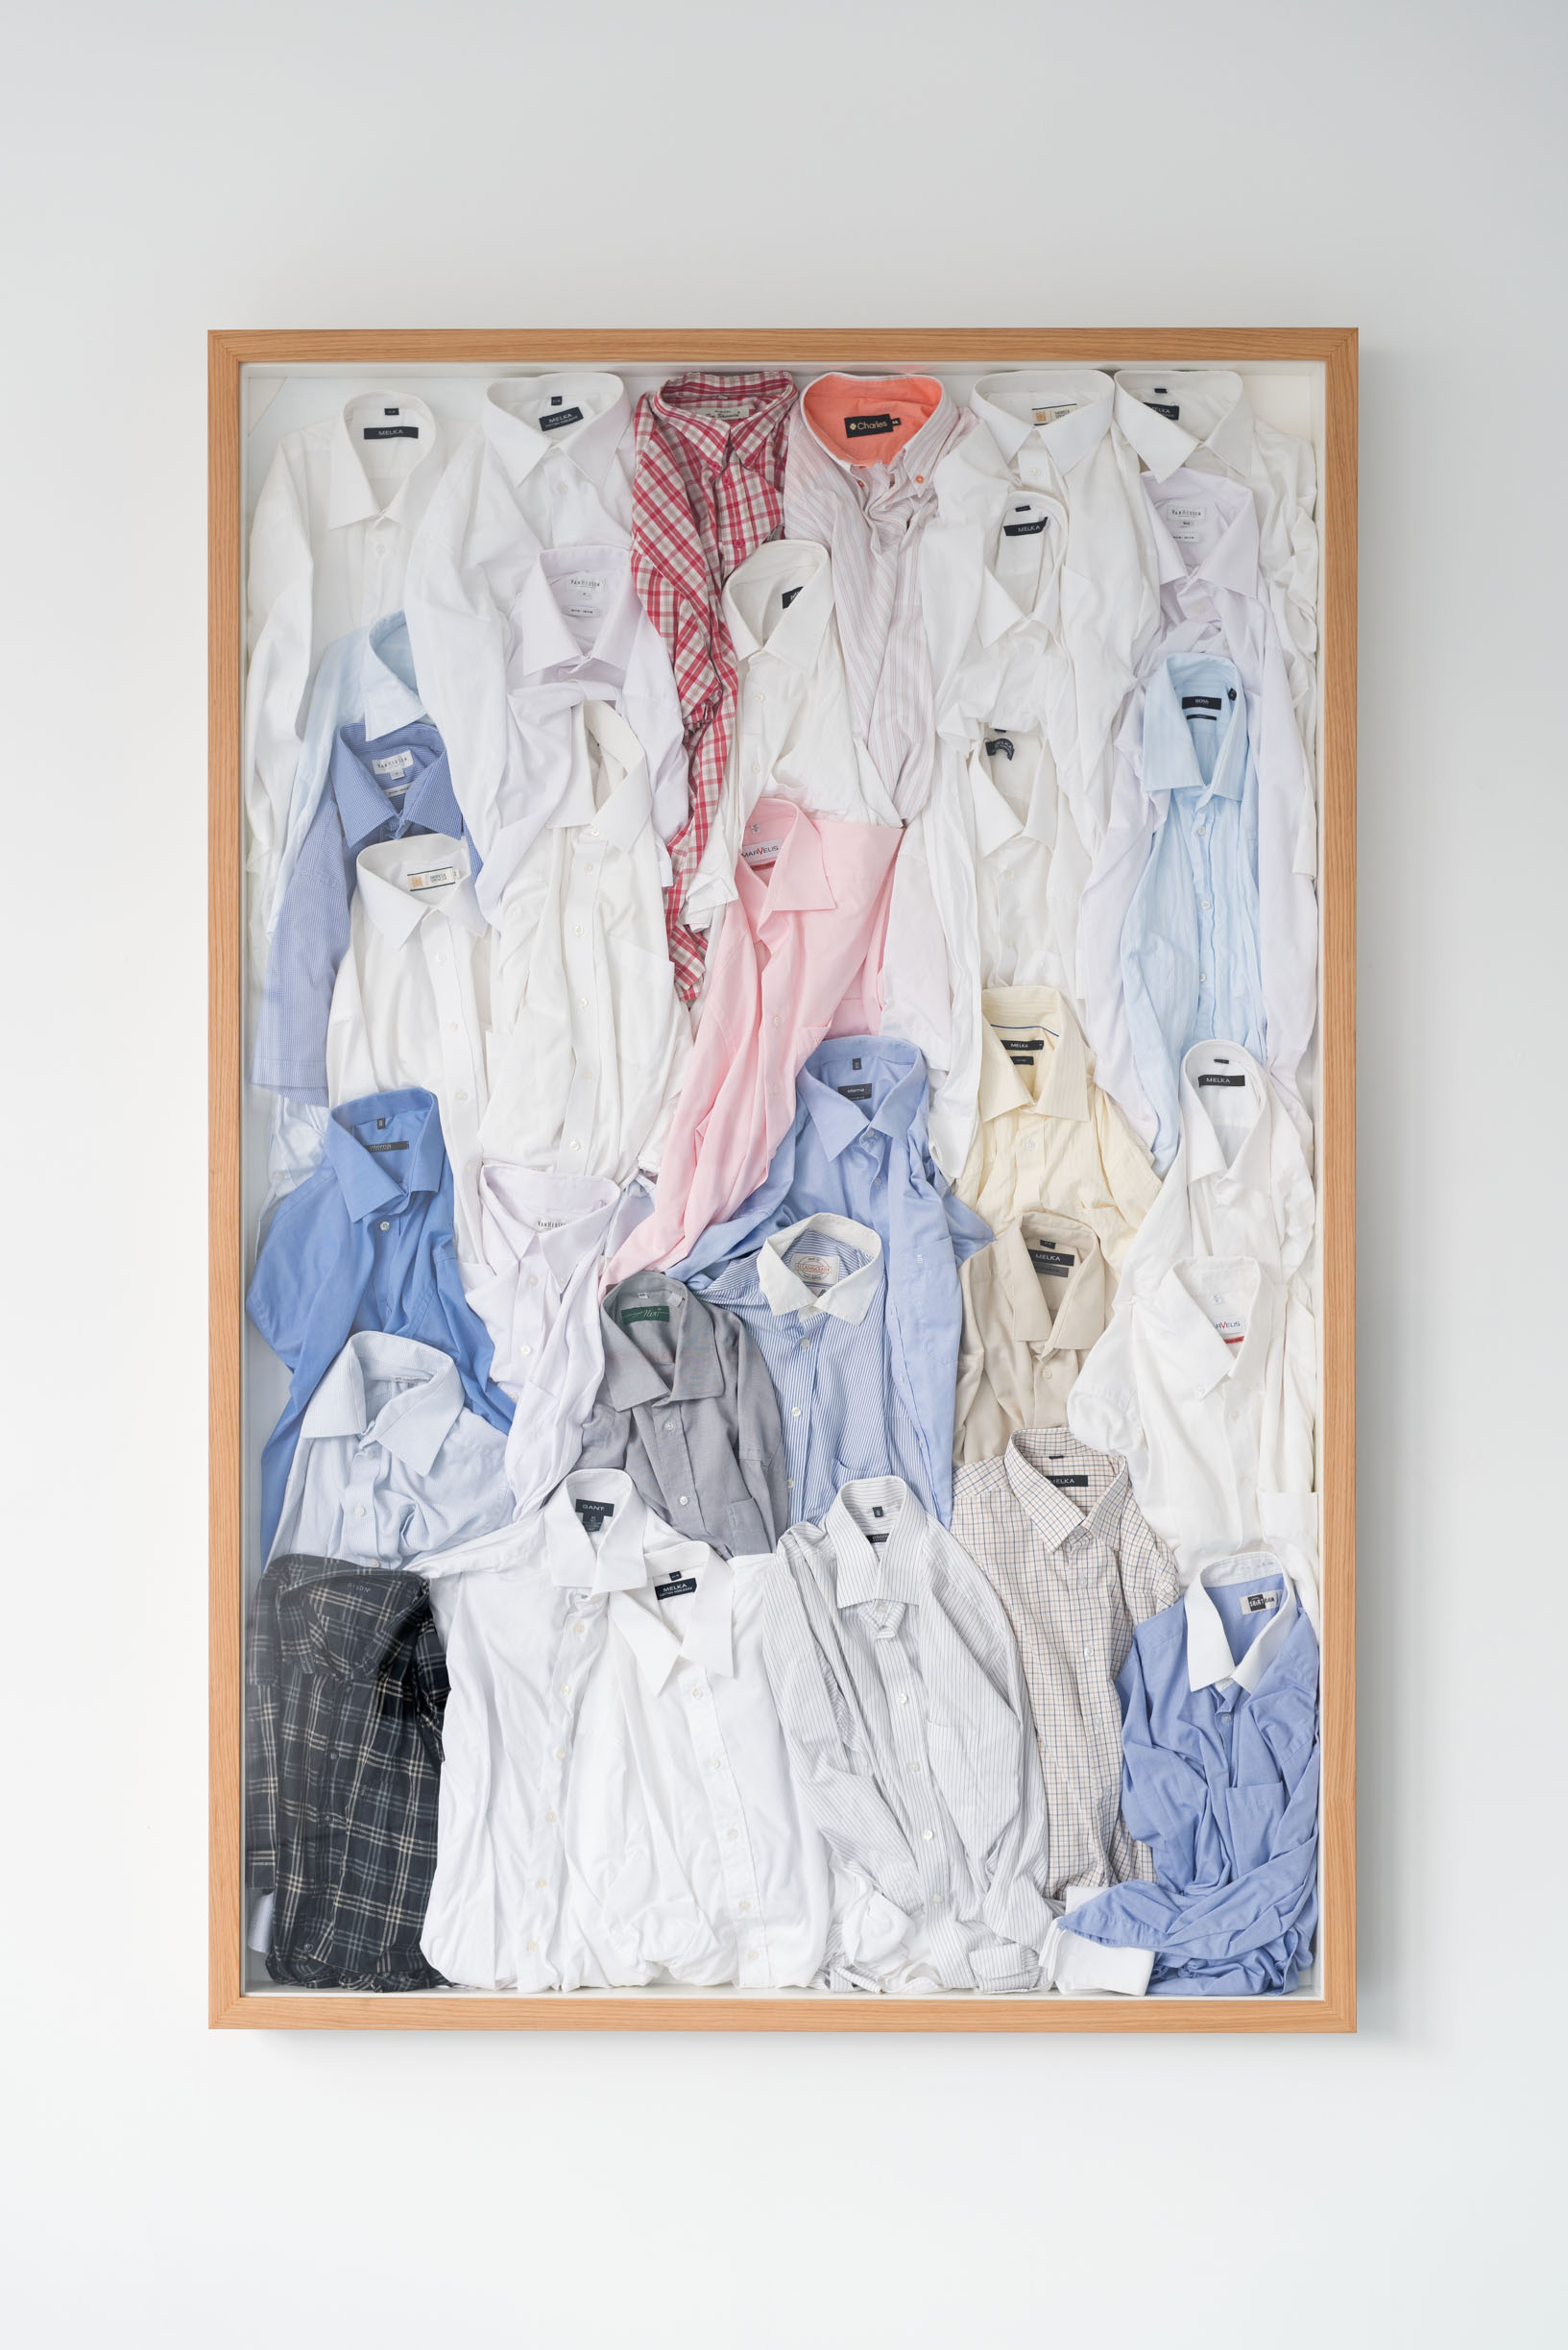 34 shirts  (2013/14), textile, 206 x 139 cm In the collection of Stavanger Concert Hall